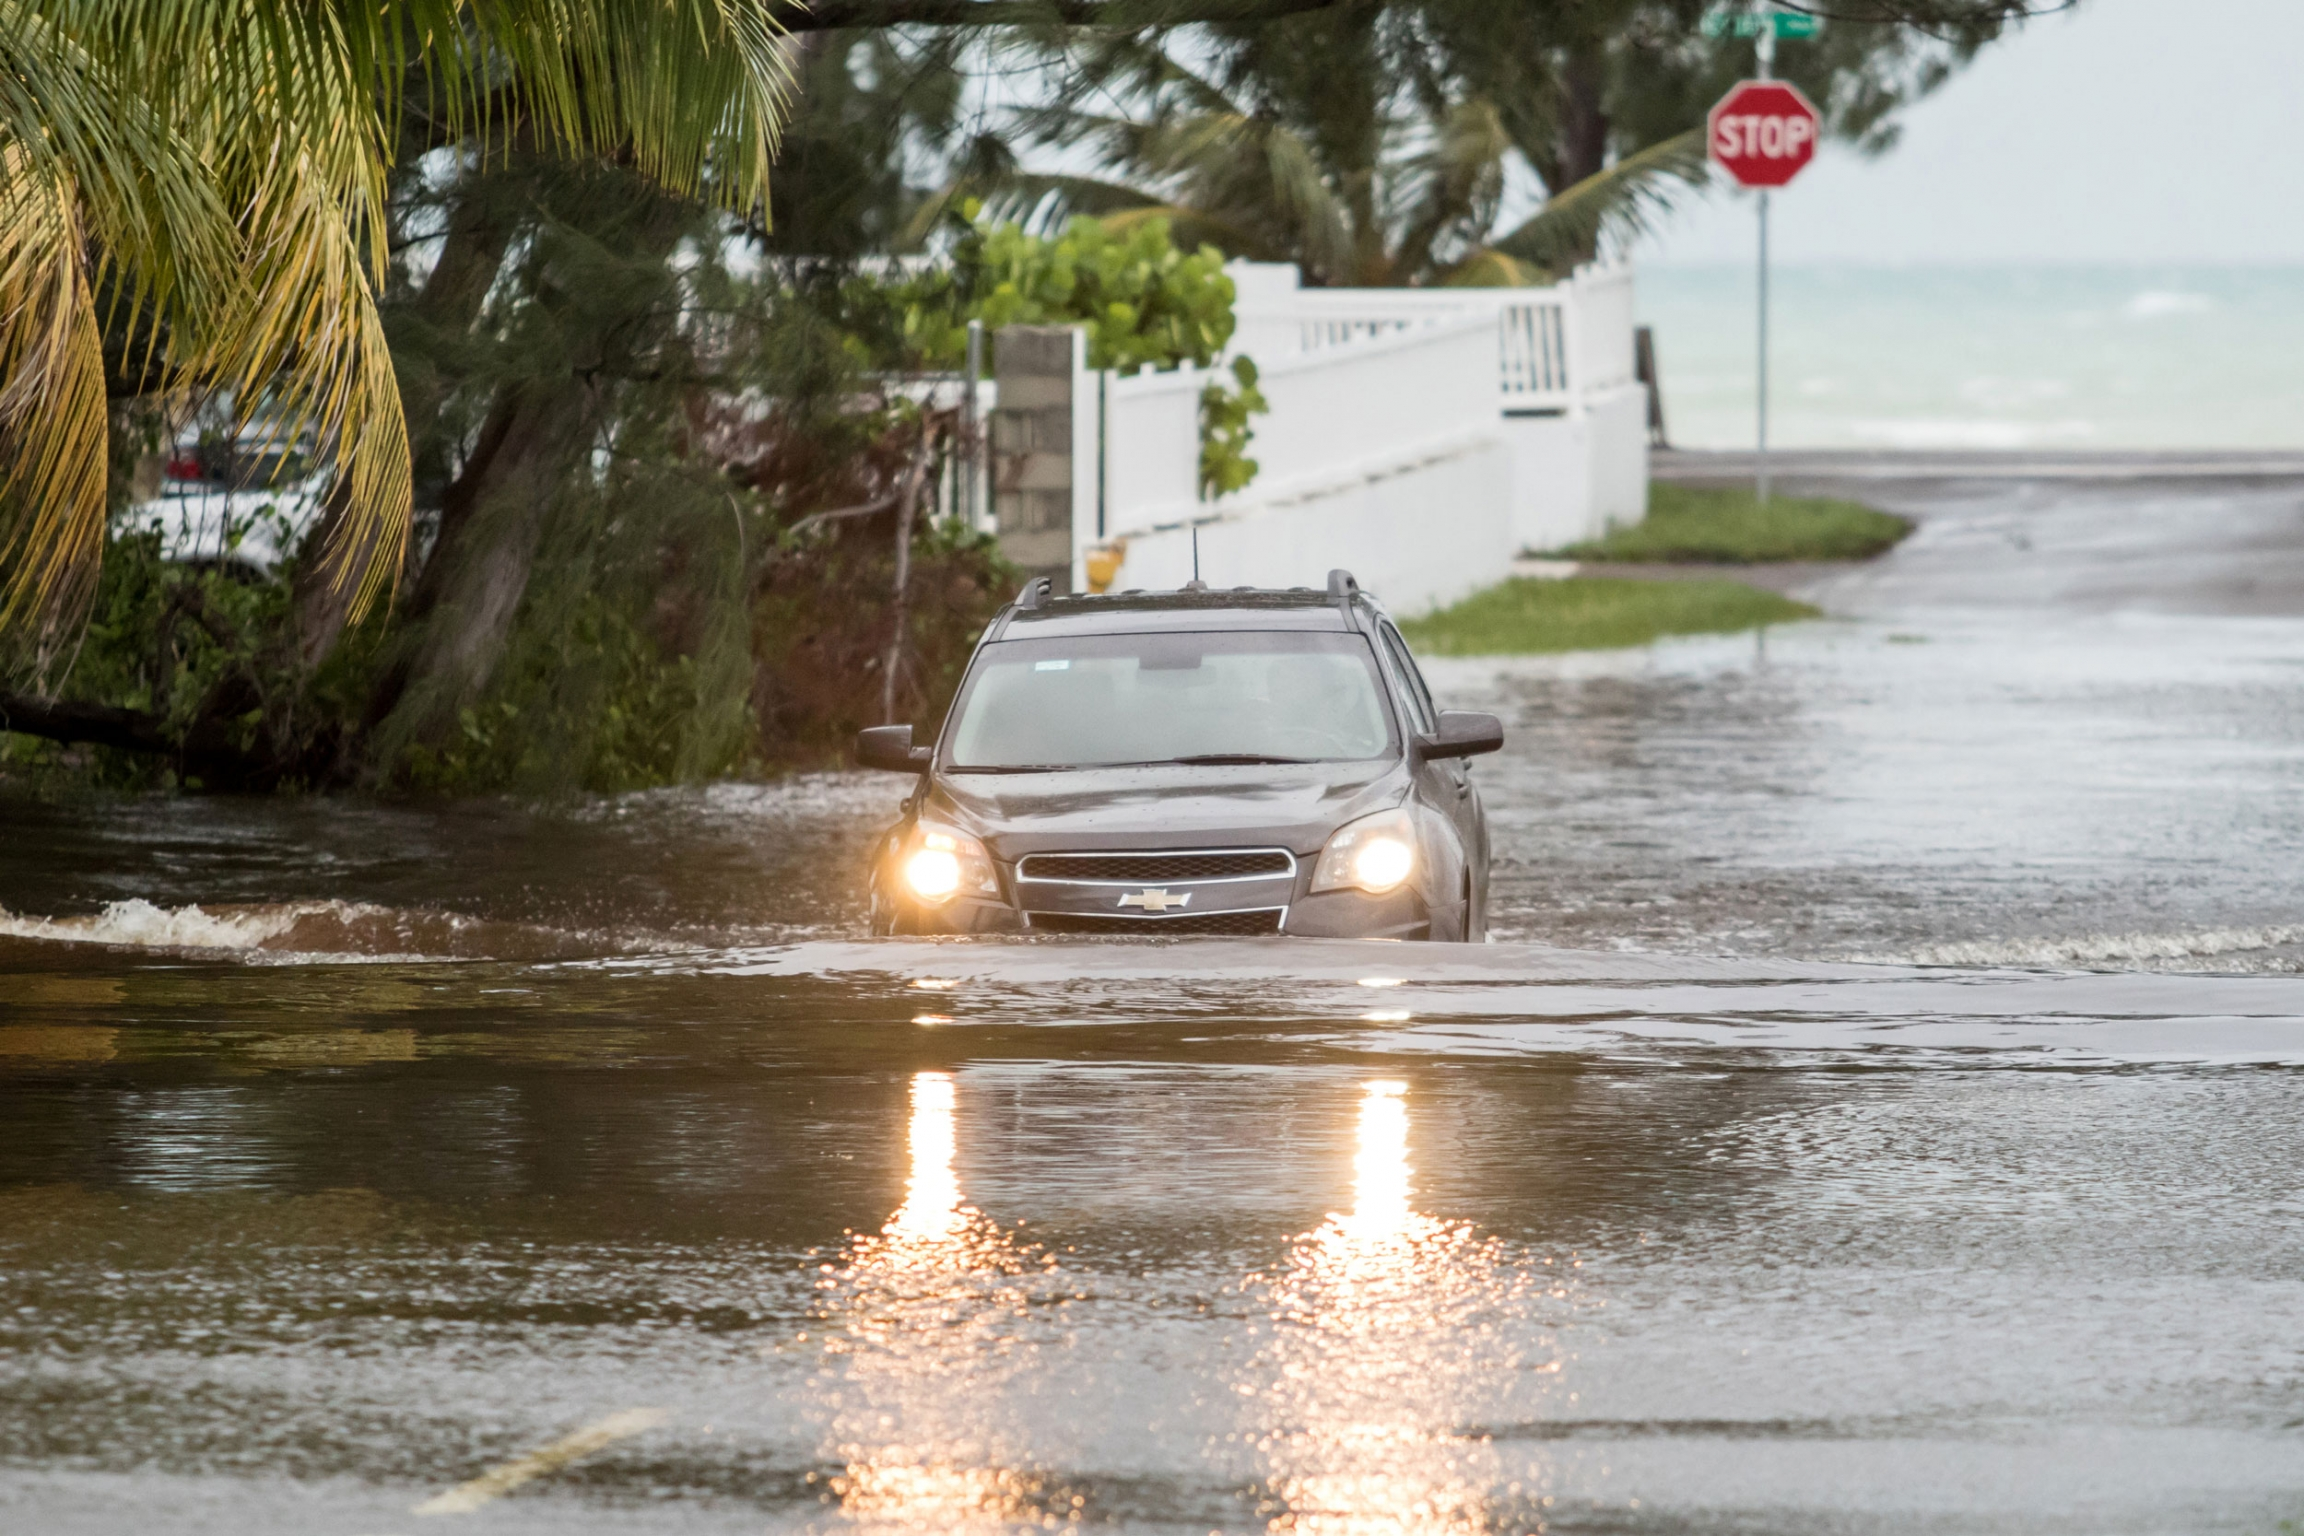 A Chevy SUV is shown driving with its lights on in a flooded street with water halfway up the tires.